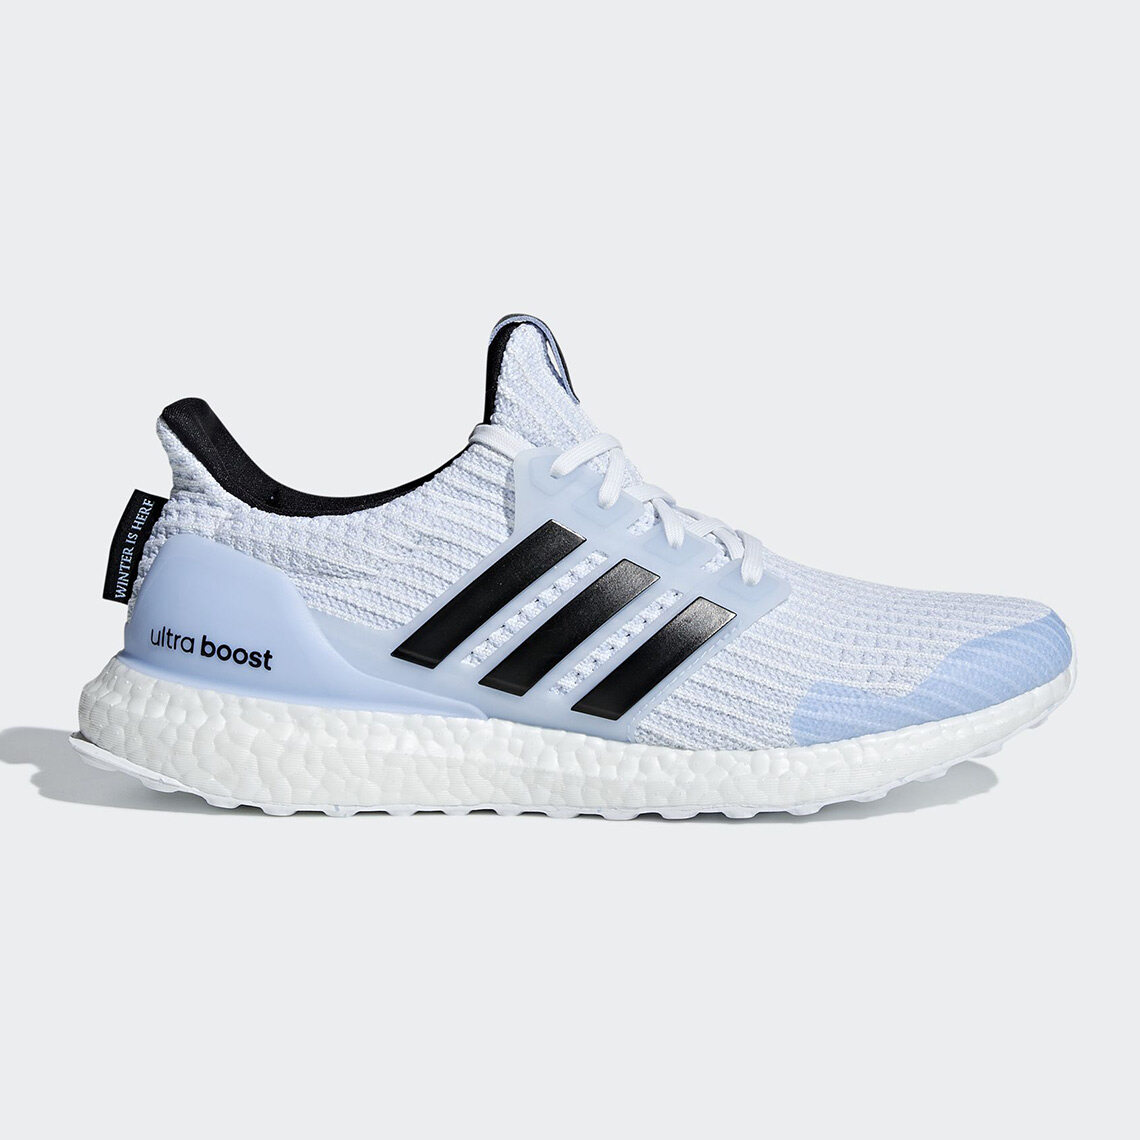 "Game Of Thrones x adidas Ultra Boost ""White Walker</p>                     </div> 		  <!--bof Product URL --> 										<!--eof Product URL --> 					<!--bof Quantity Discounts table --> 											<!--eof Quantity Discounts table --> 				</div> 				                       			</dd> 						<dt class="